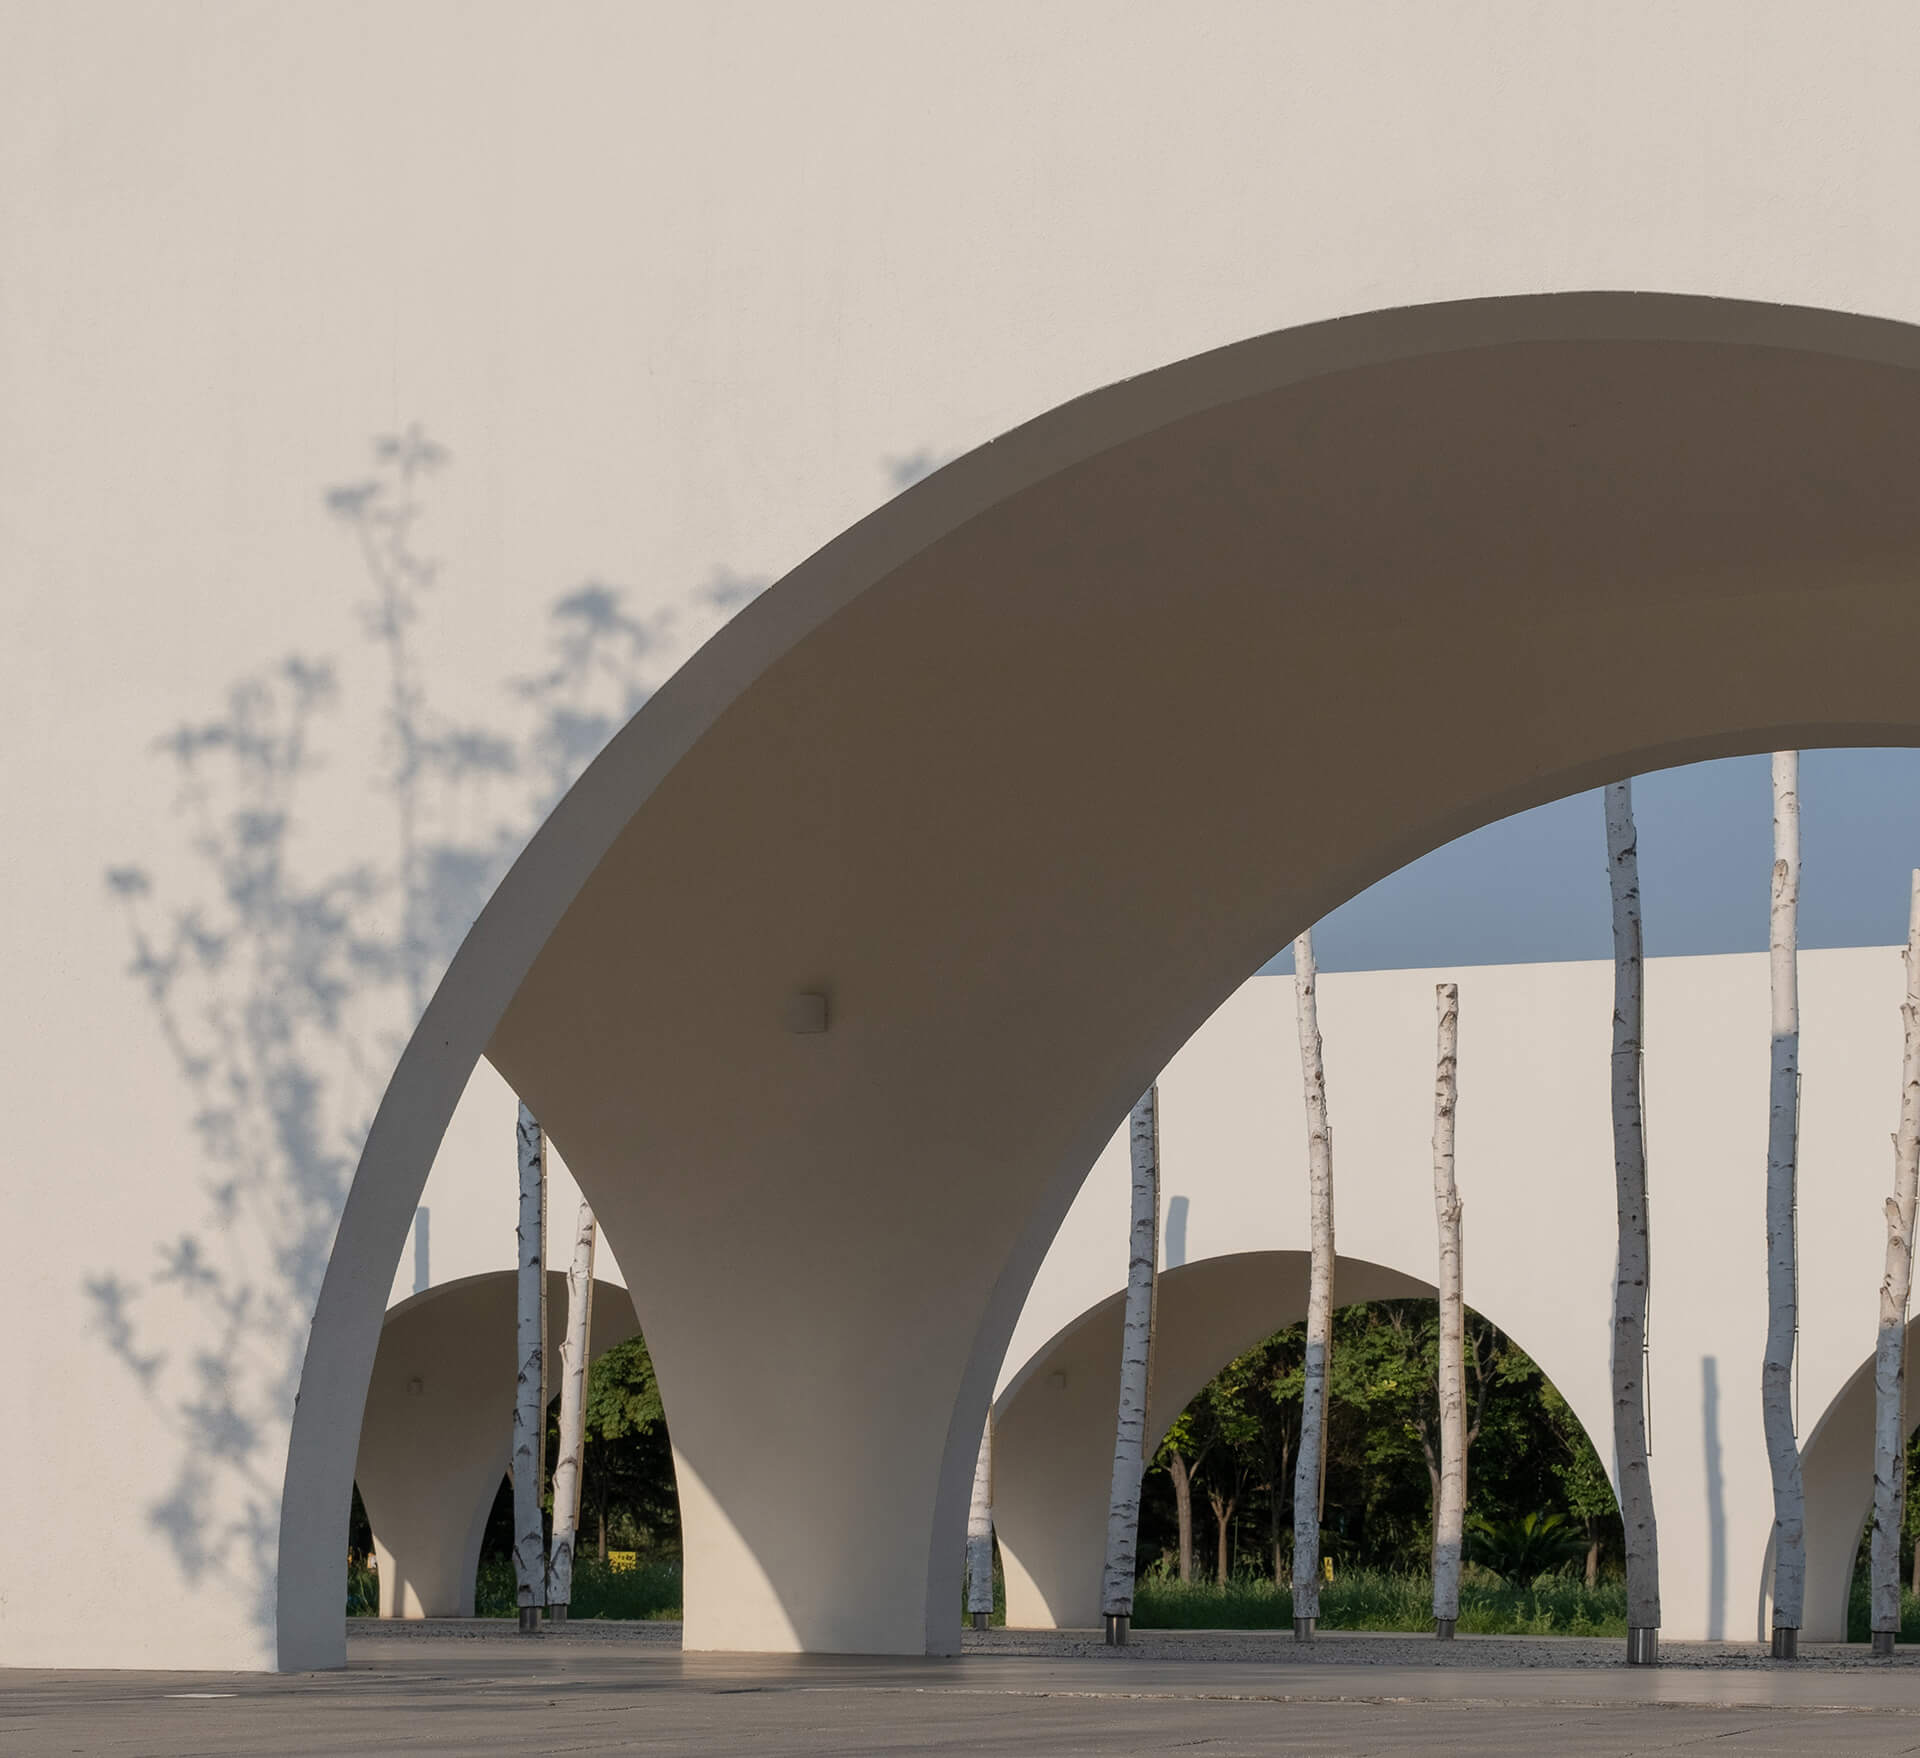 Arched verandah | Qinchang Village Community Center | Studio 10 | STIRworld